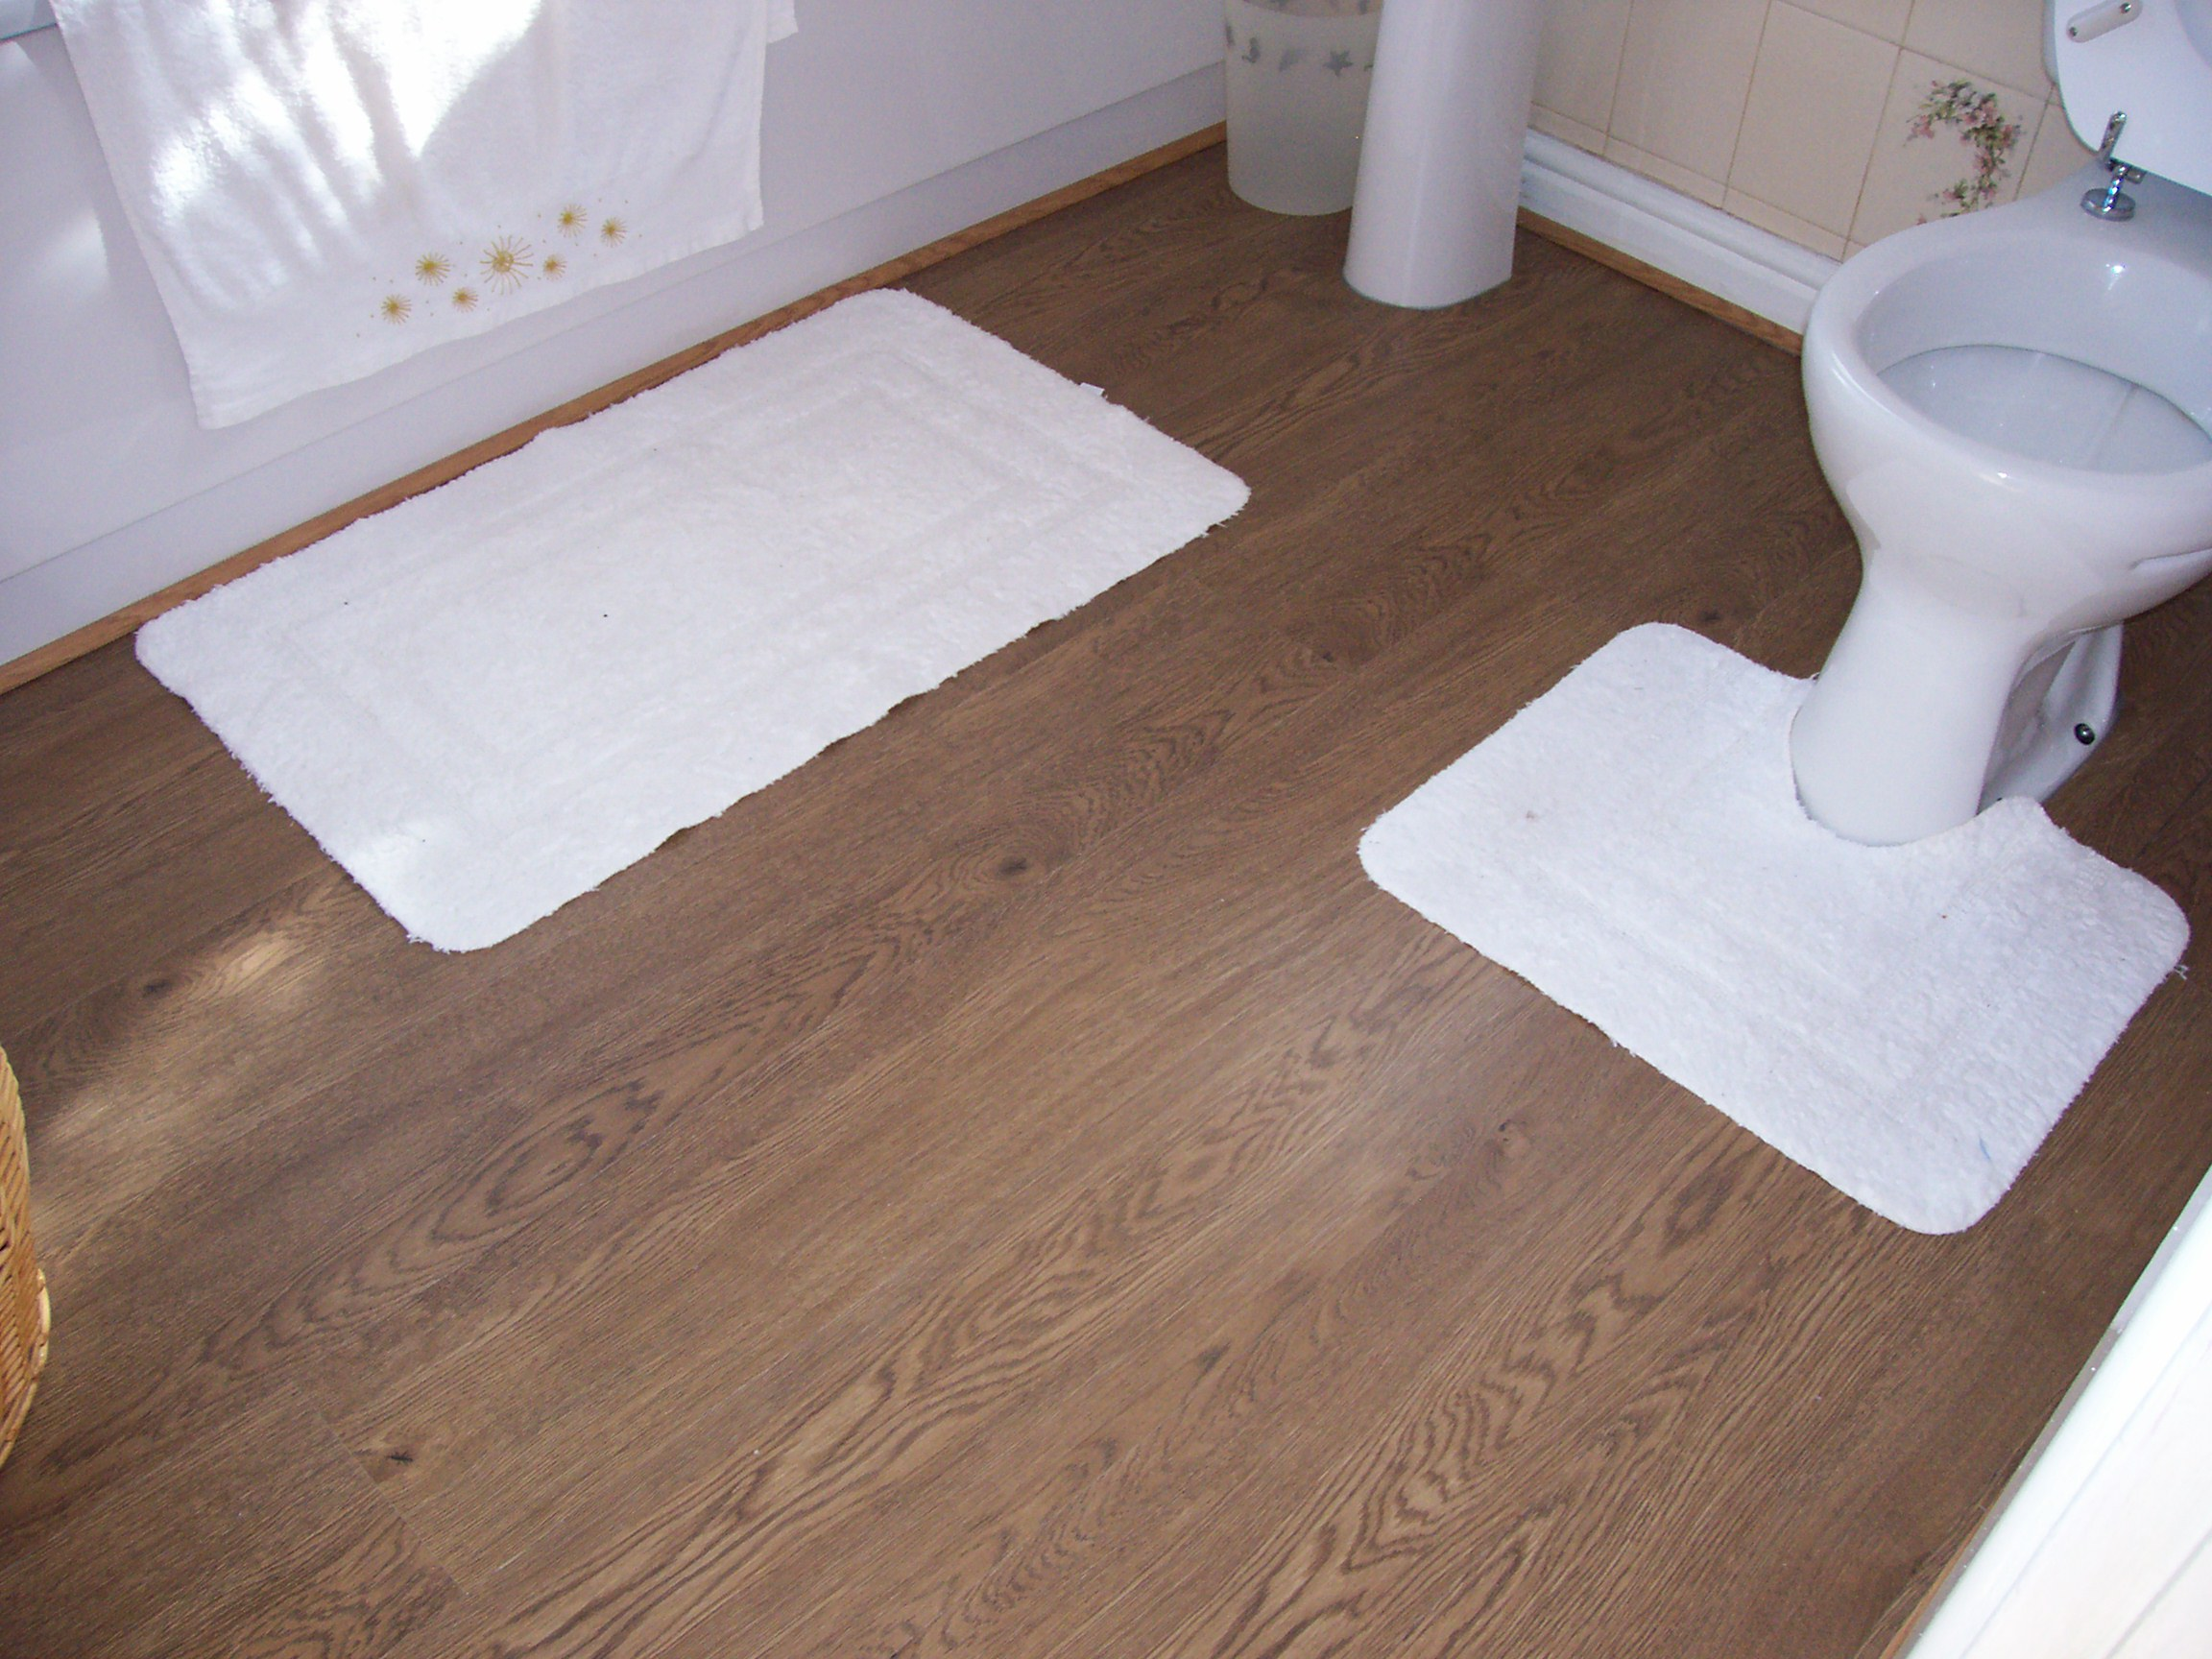 Laminate Flooring Bathroom Large And Beautiful Photos Photo To Select Laminate Flooring Bathroom Design Your Home